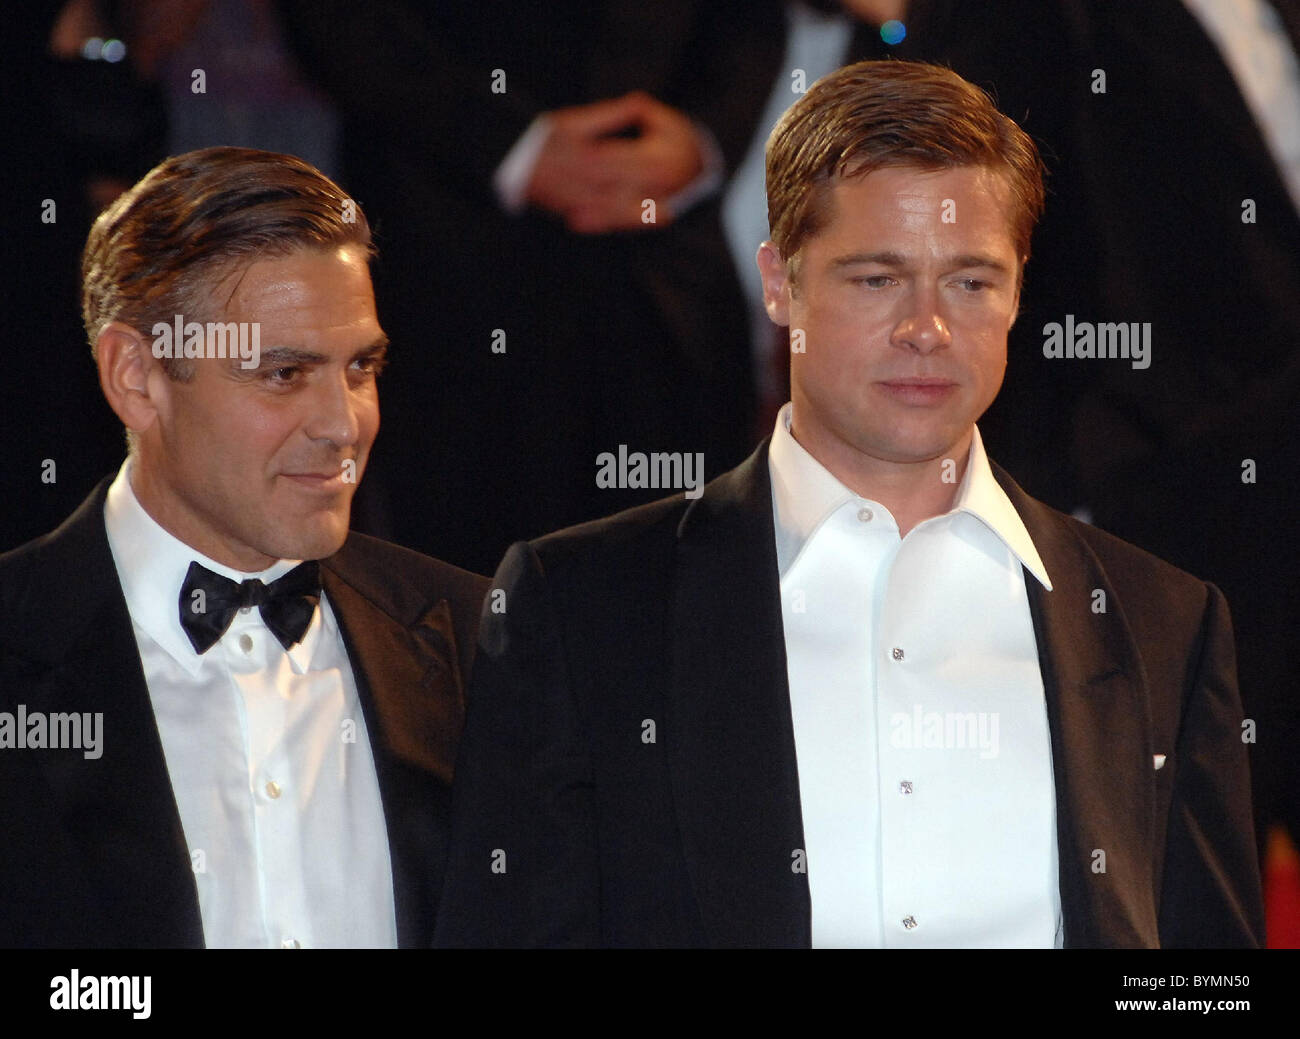 George Clooney and Brad Pitt 2007 Cannes Film Festival Day 9 Stock Photo: 34261724 - Alamy